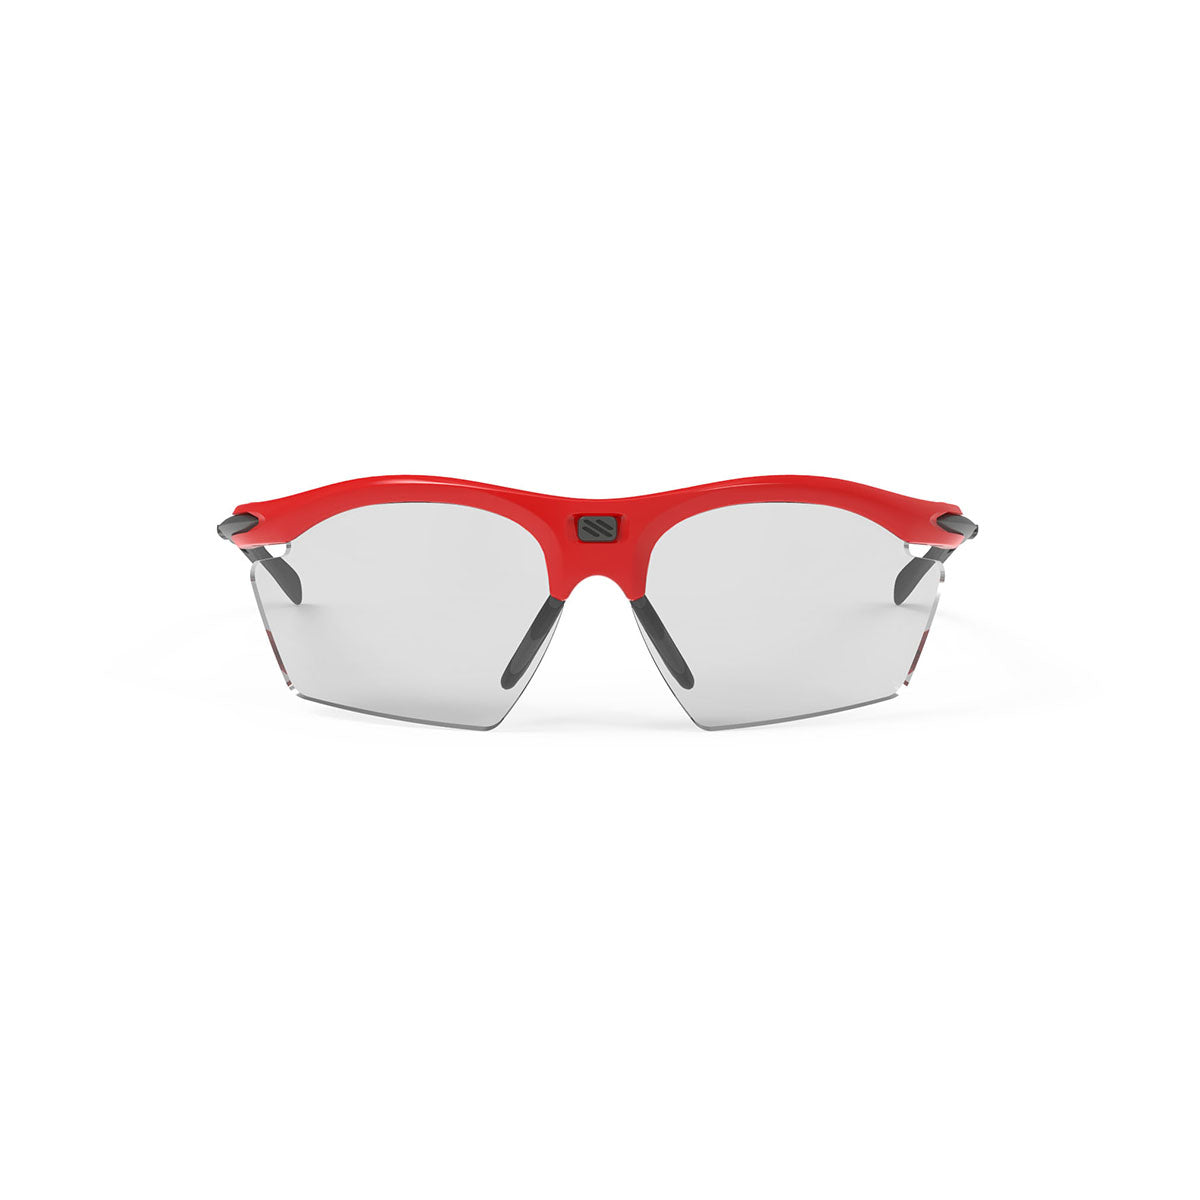 Rudy Project - Rydon Slim  - frame color: Fire Red Gloss - lens color: ImpactX-2 Photochromic Clear to Black - photo angle: Front View Variant Hover Image